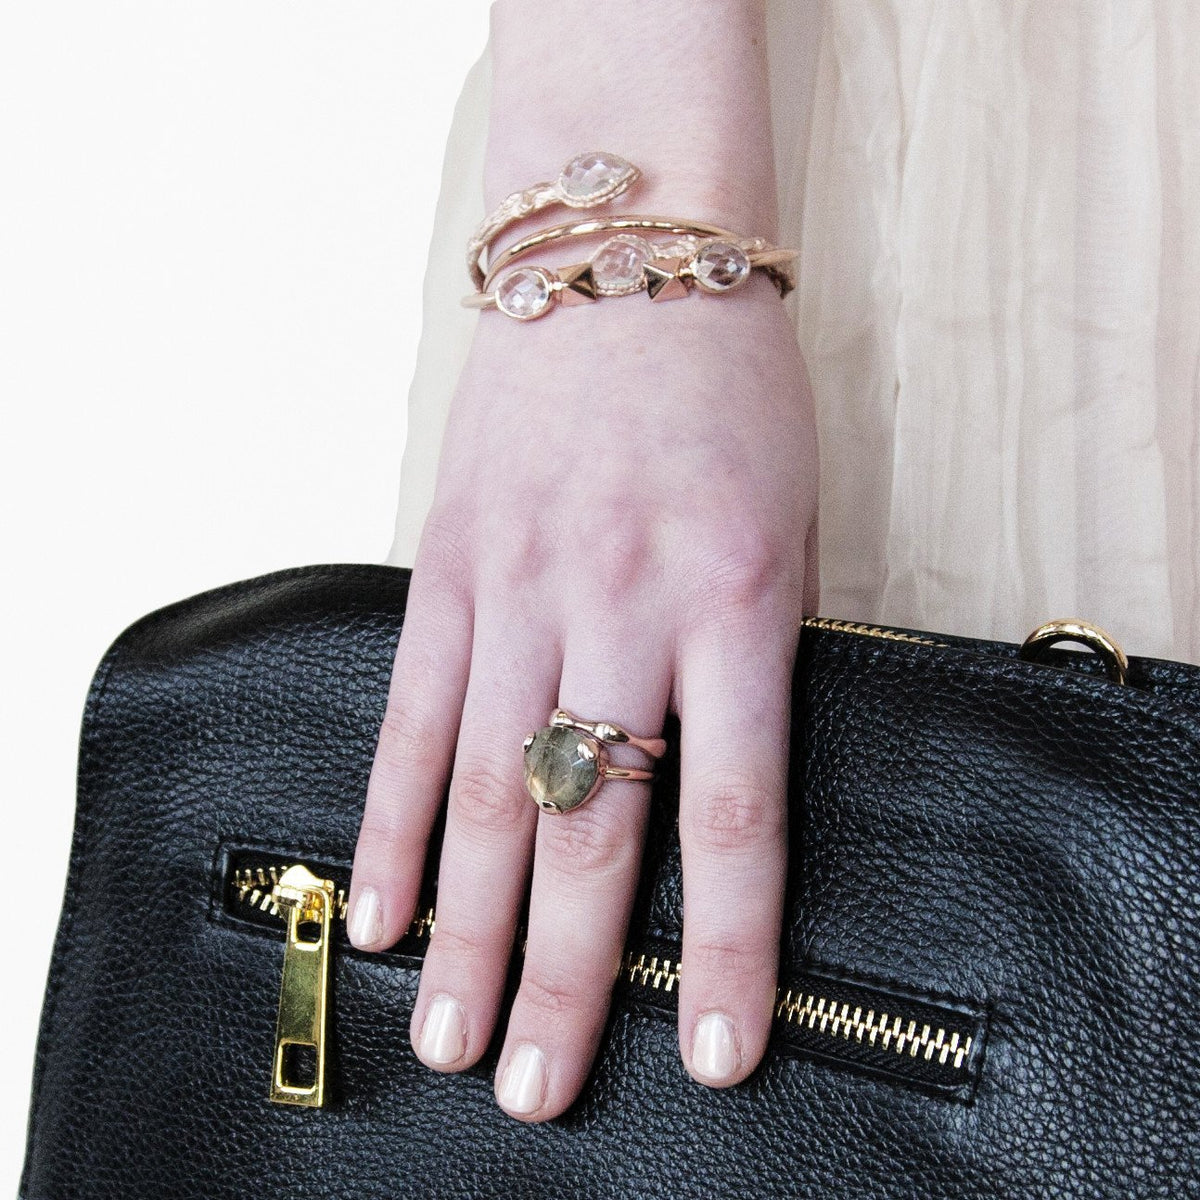 ADORE CUFF - ROCK CRYSTAL & ROSE GOLD - SO PRETTY CARA COTTER